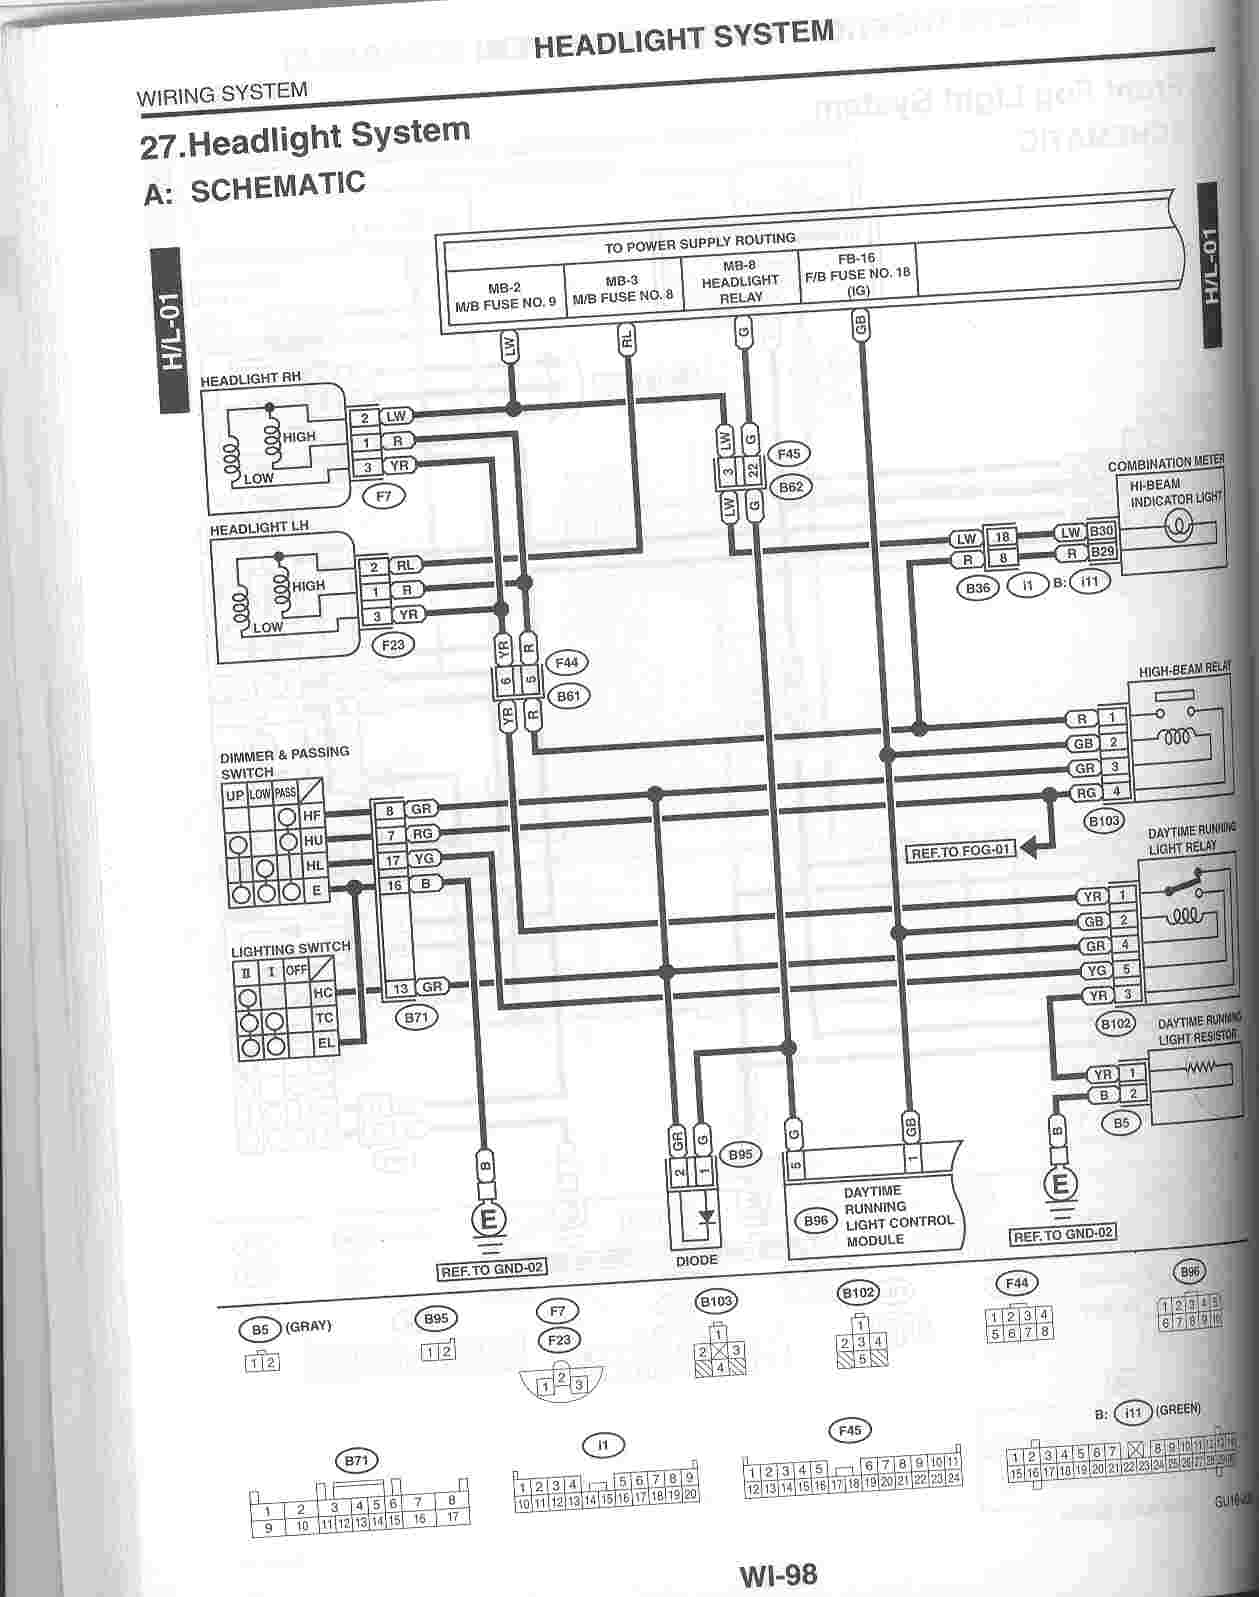 Subaru Wrx 99 Wiring Diagram -85 Cadillac Eldorado Wiring Diagram | Begeboy Wiring  Diagram Source | 99 Subaru Impreza Headlight Wiring Diagram |  | Begeboy Wiring Diagram Source